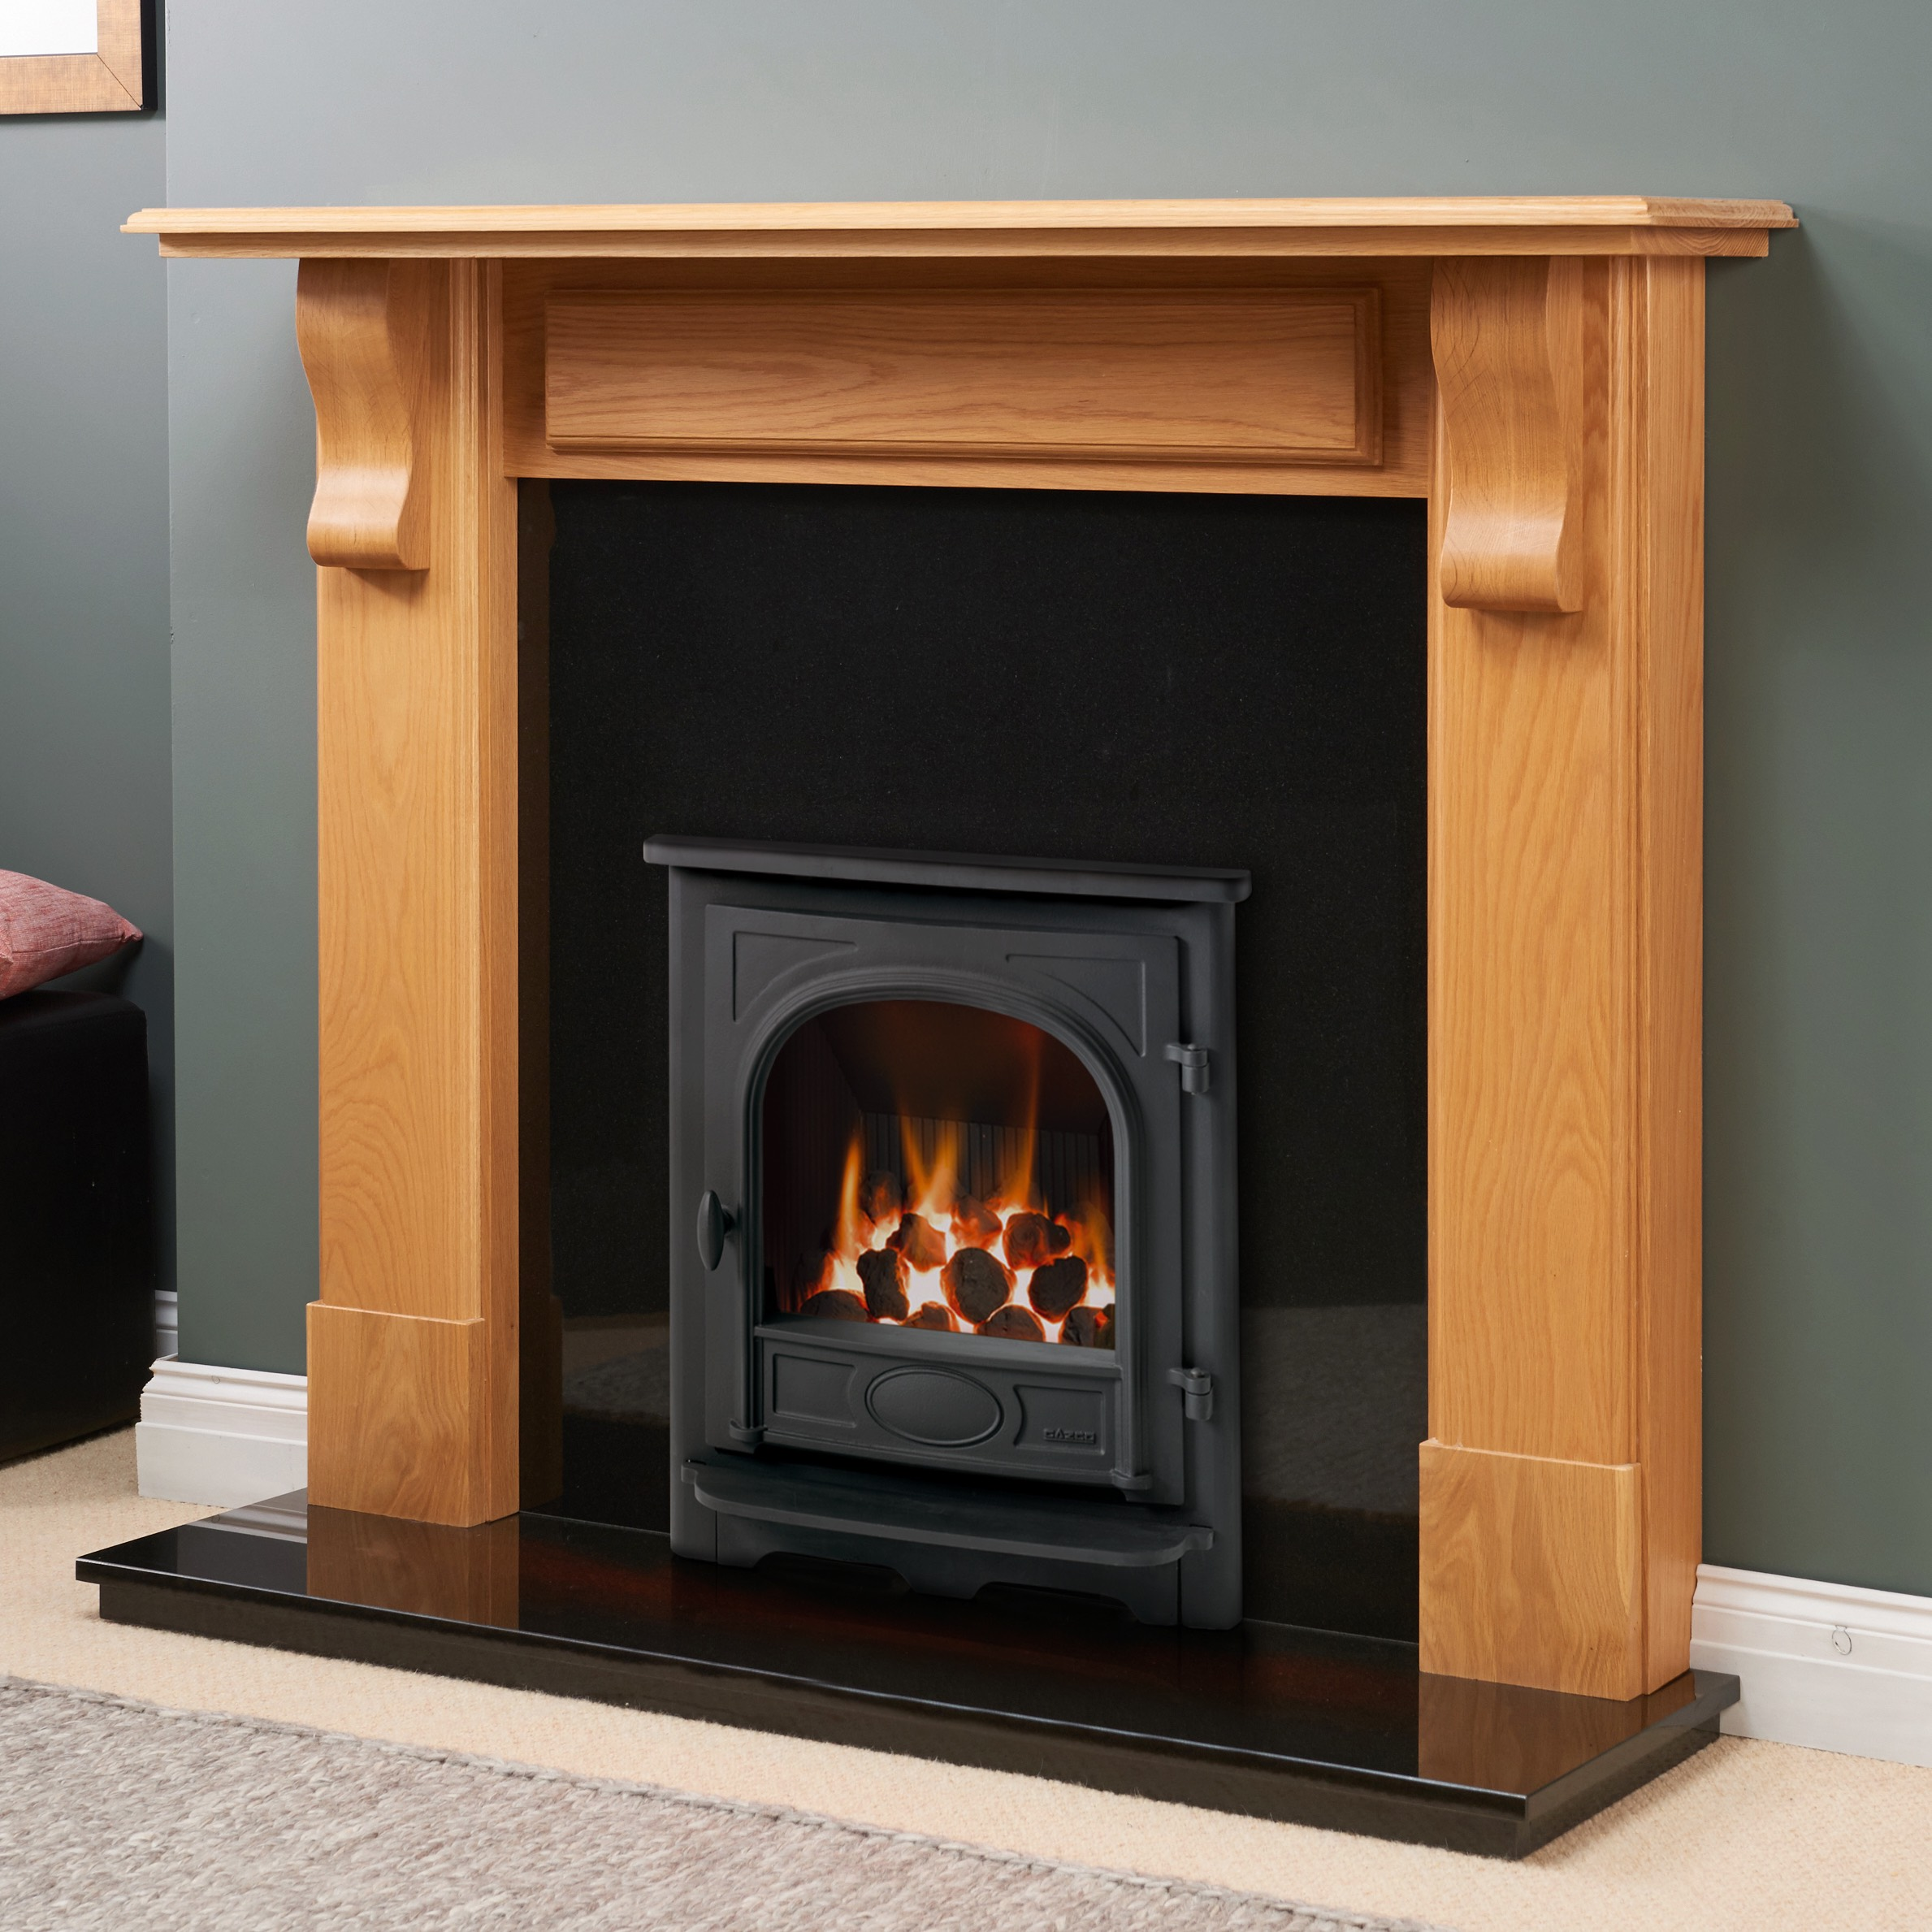 Fairways Goodrich Solid Oak Fire Surround